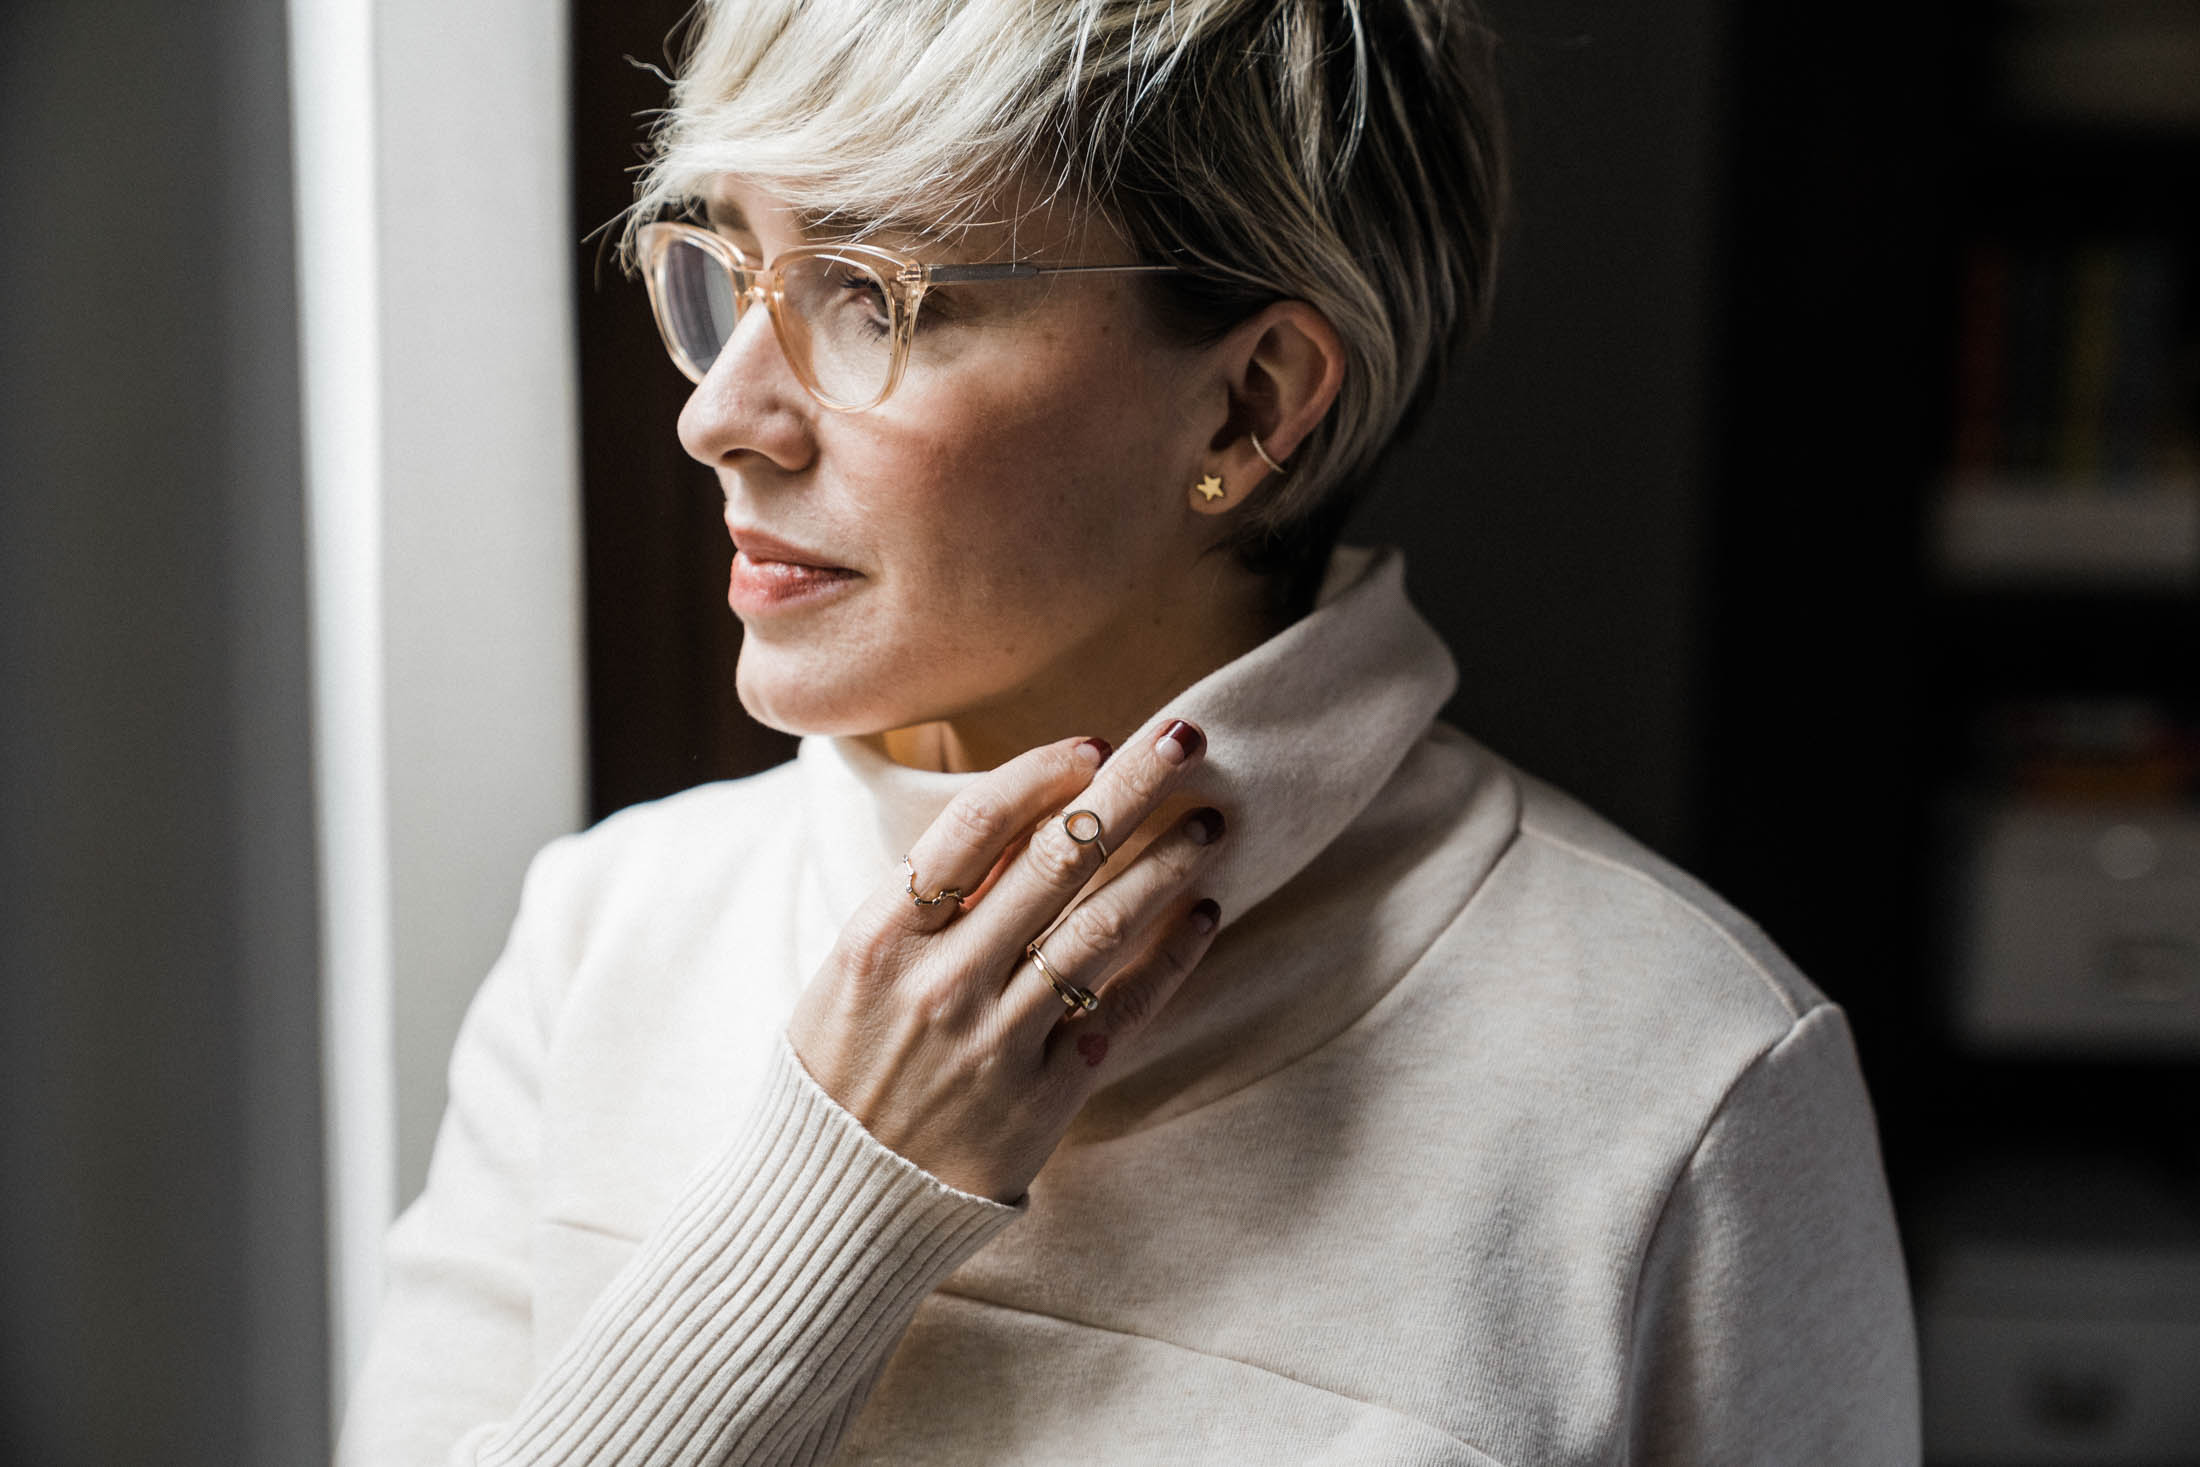 Glasses gals, finding the spot-on combo for earrings & eyewear is TOUGH. Luckily, we've got style tips. Here's how to strike the right balance with jewelry.